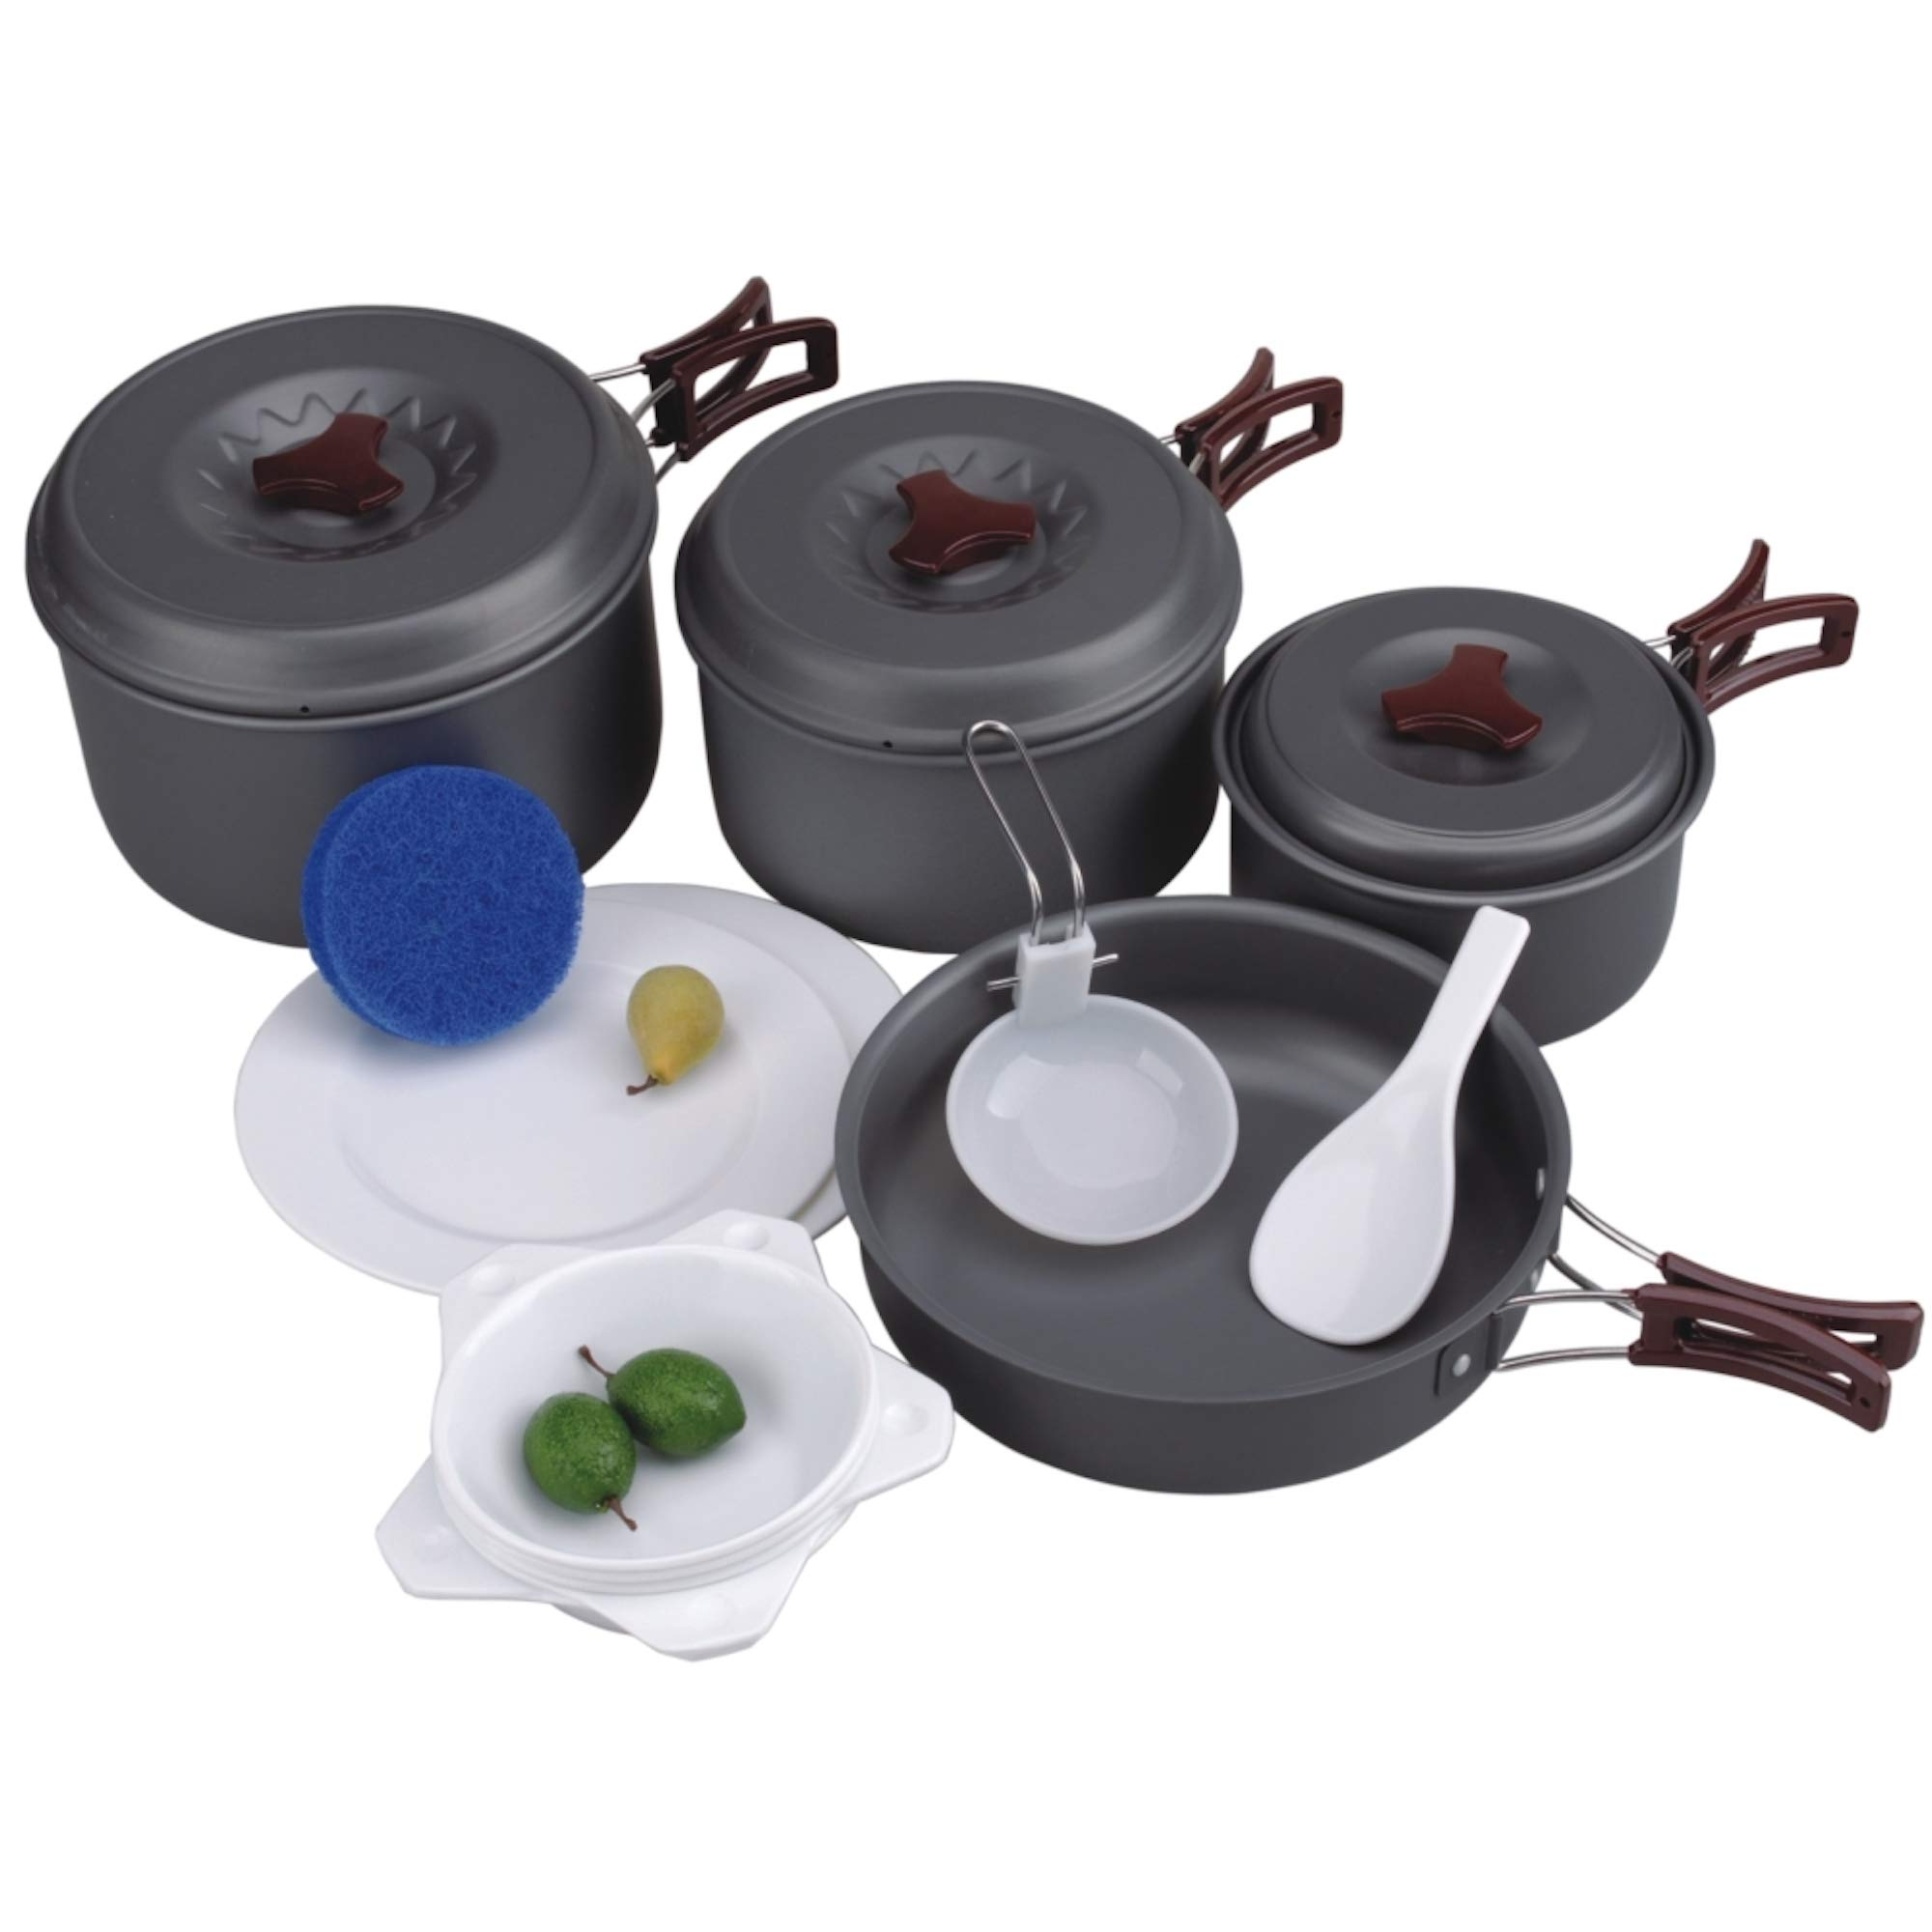 AceCamp Hard-Anodized Portable Camping Cookware Set, Stackable Nonstick Aluminum Cooking Mess Kit, Lightweight Family Pots, Pans, Cups, Bowls & More with Mesh Carrying Bag (Large - 4-5 Person Set) by AceCamp